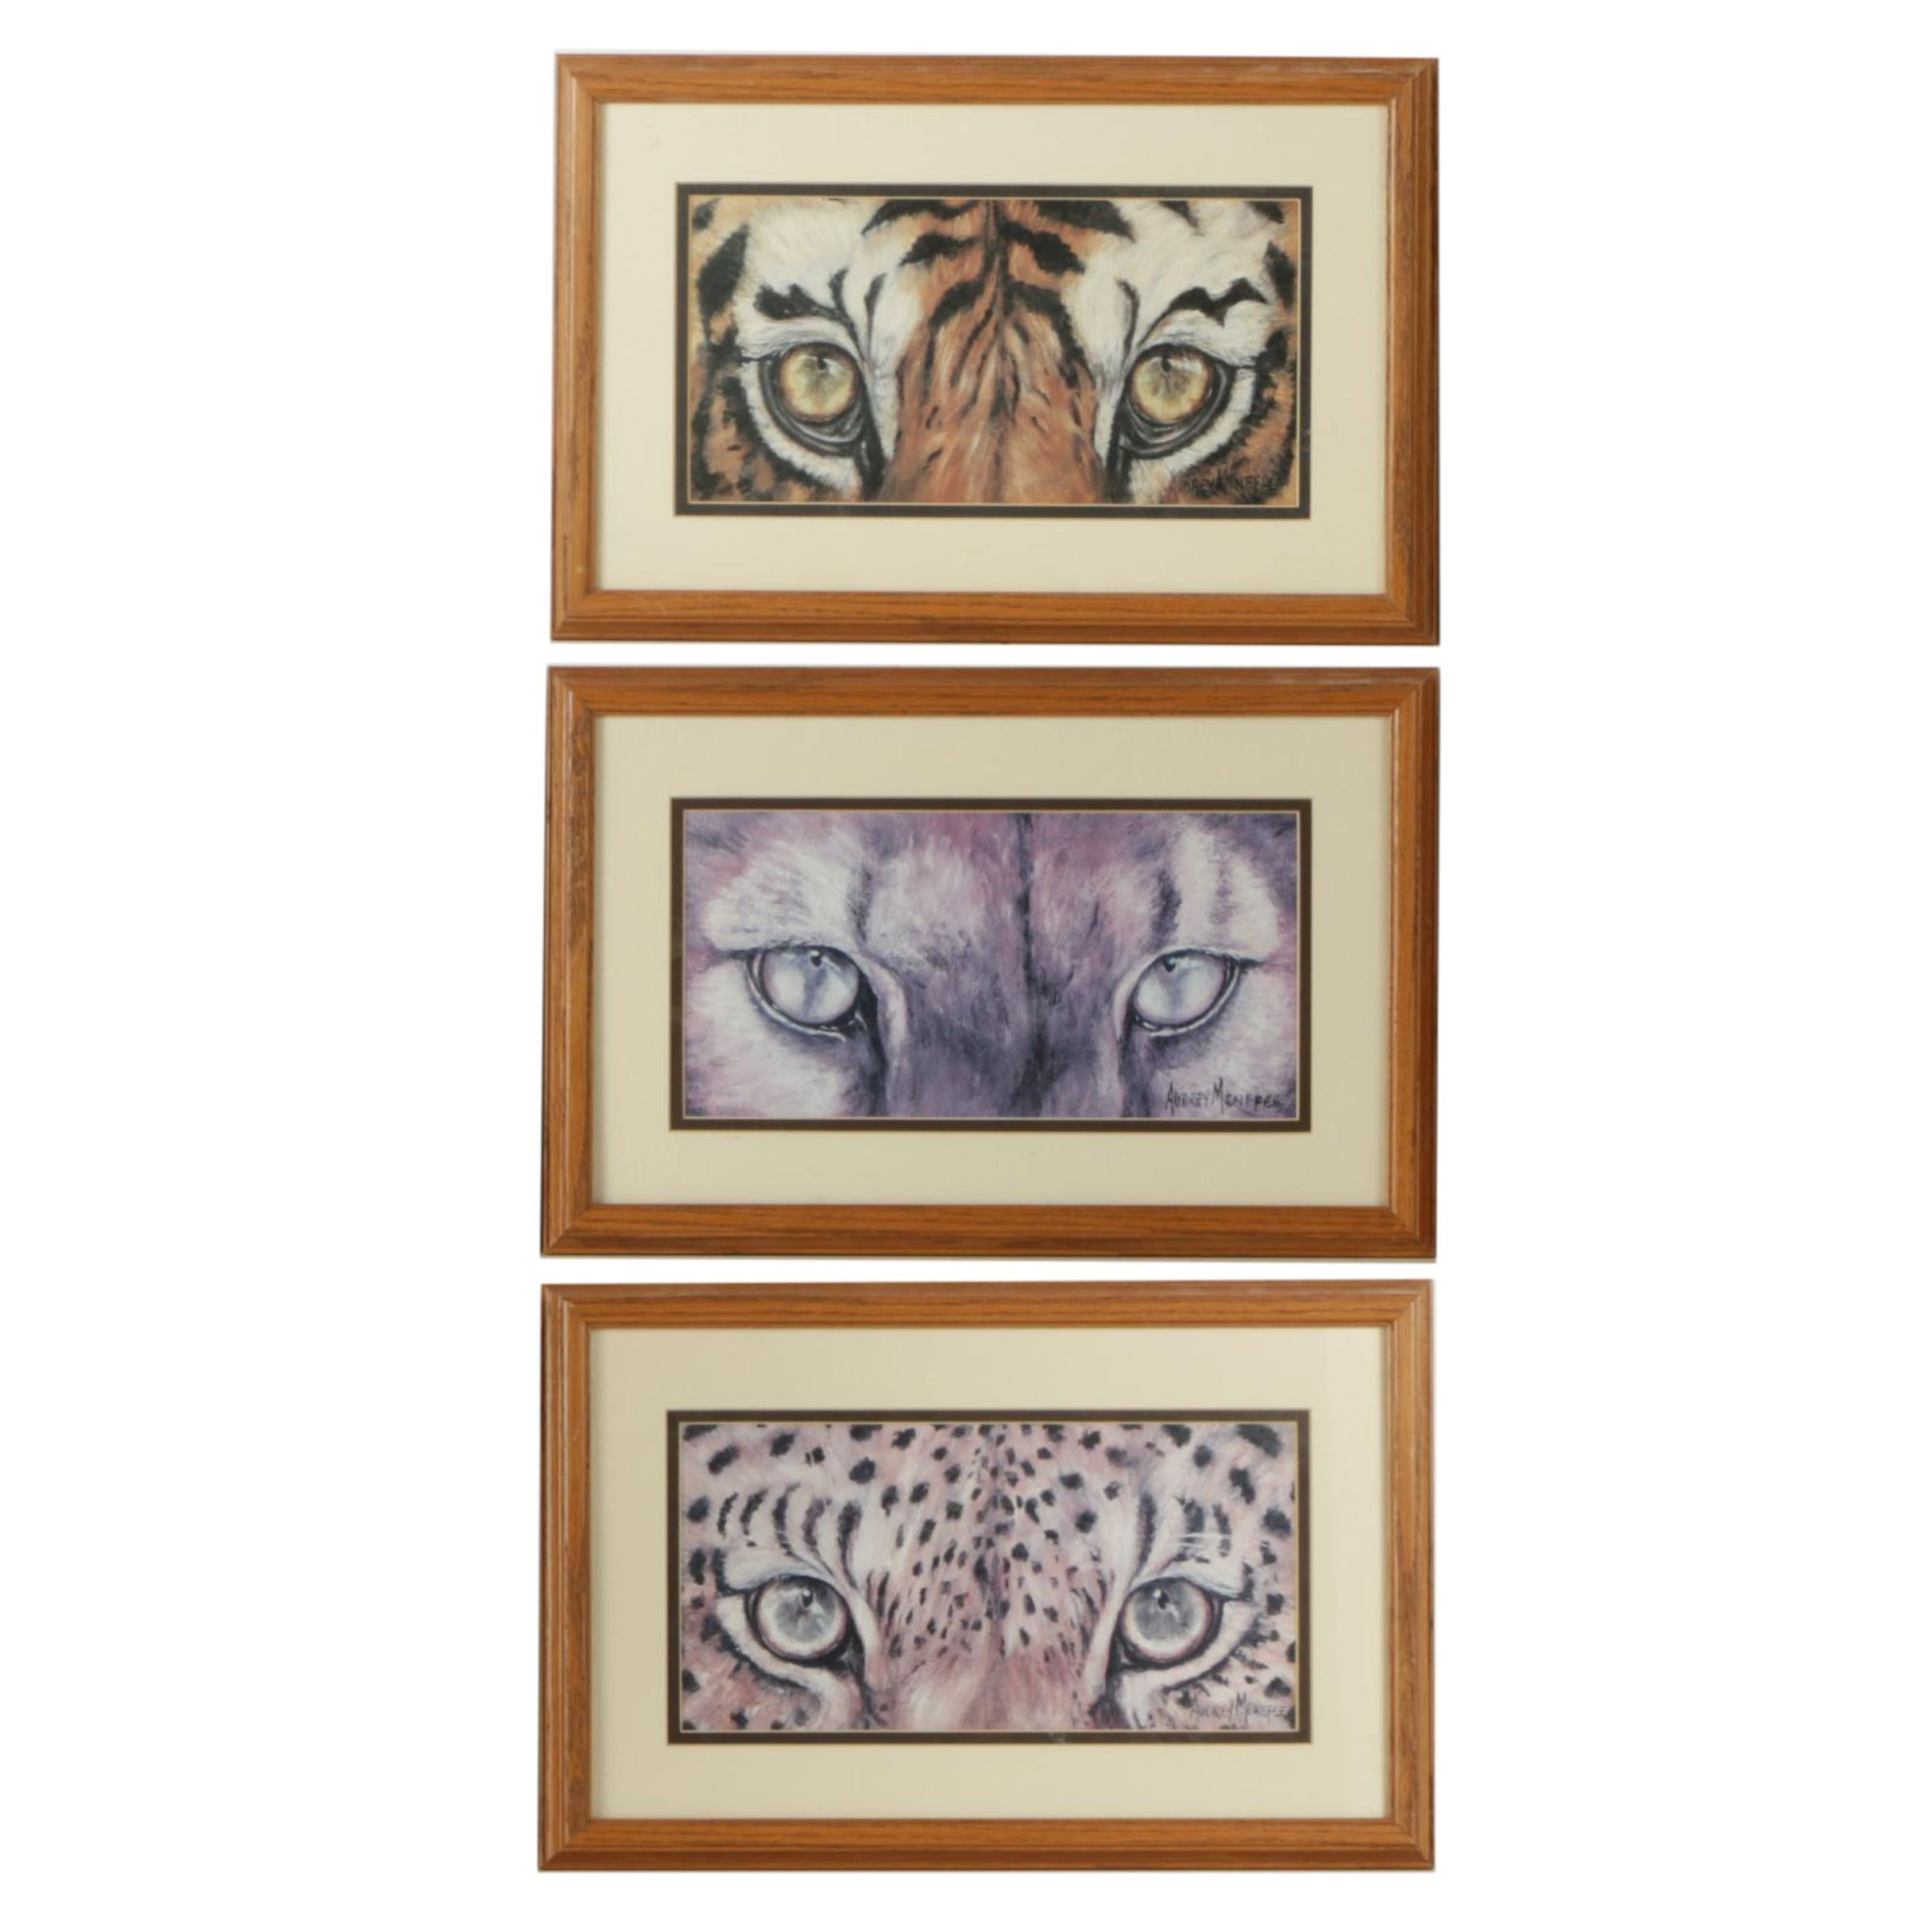 Set of Offset Lithographs on Paper After Audrey Menefee